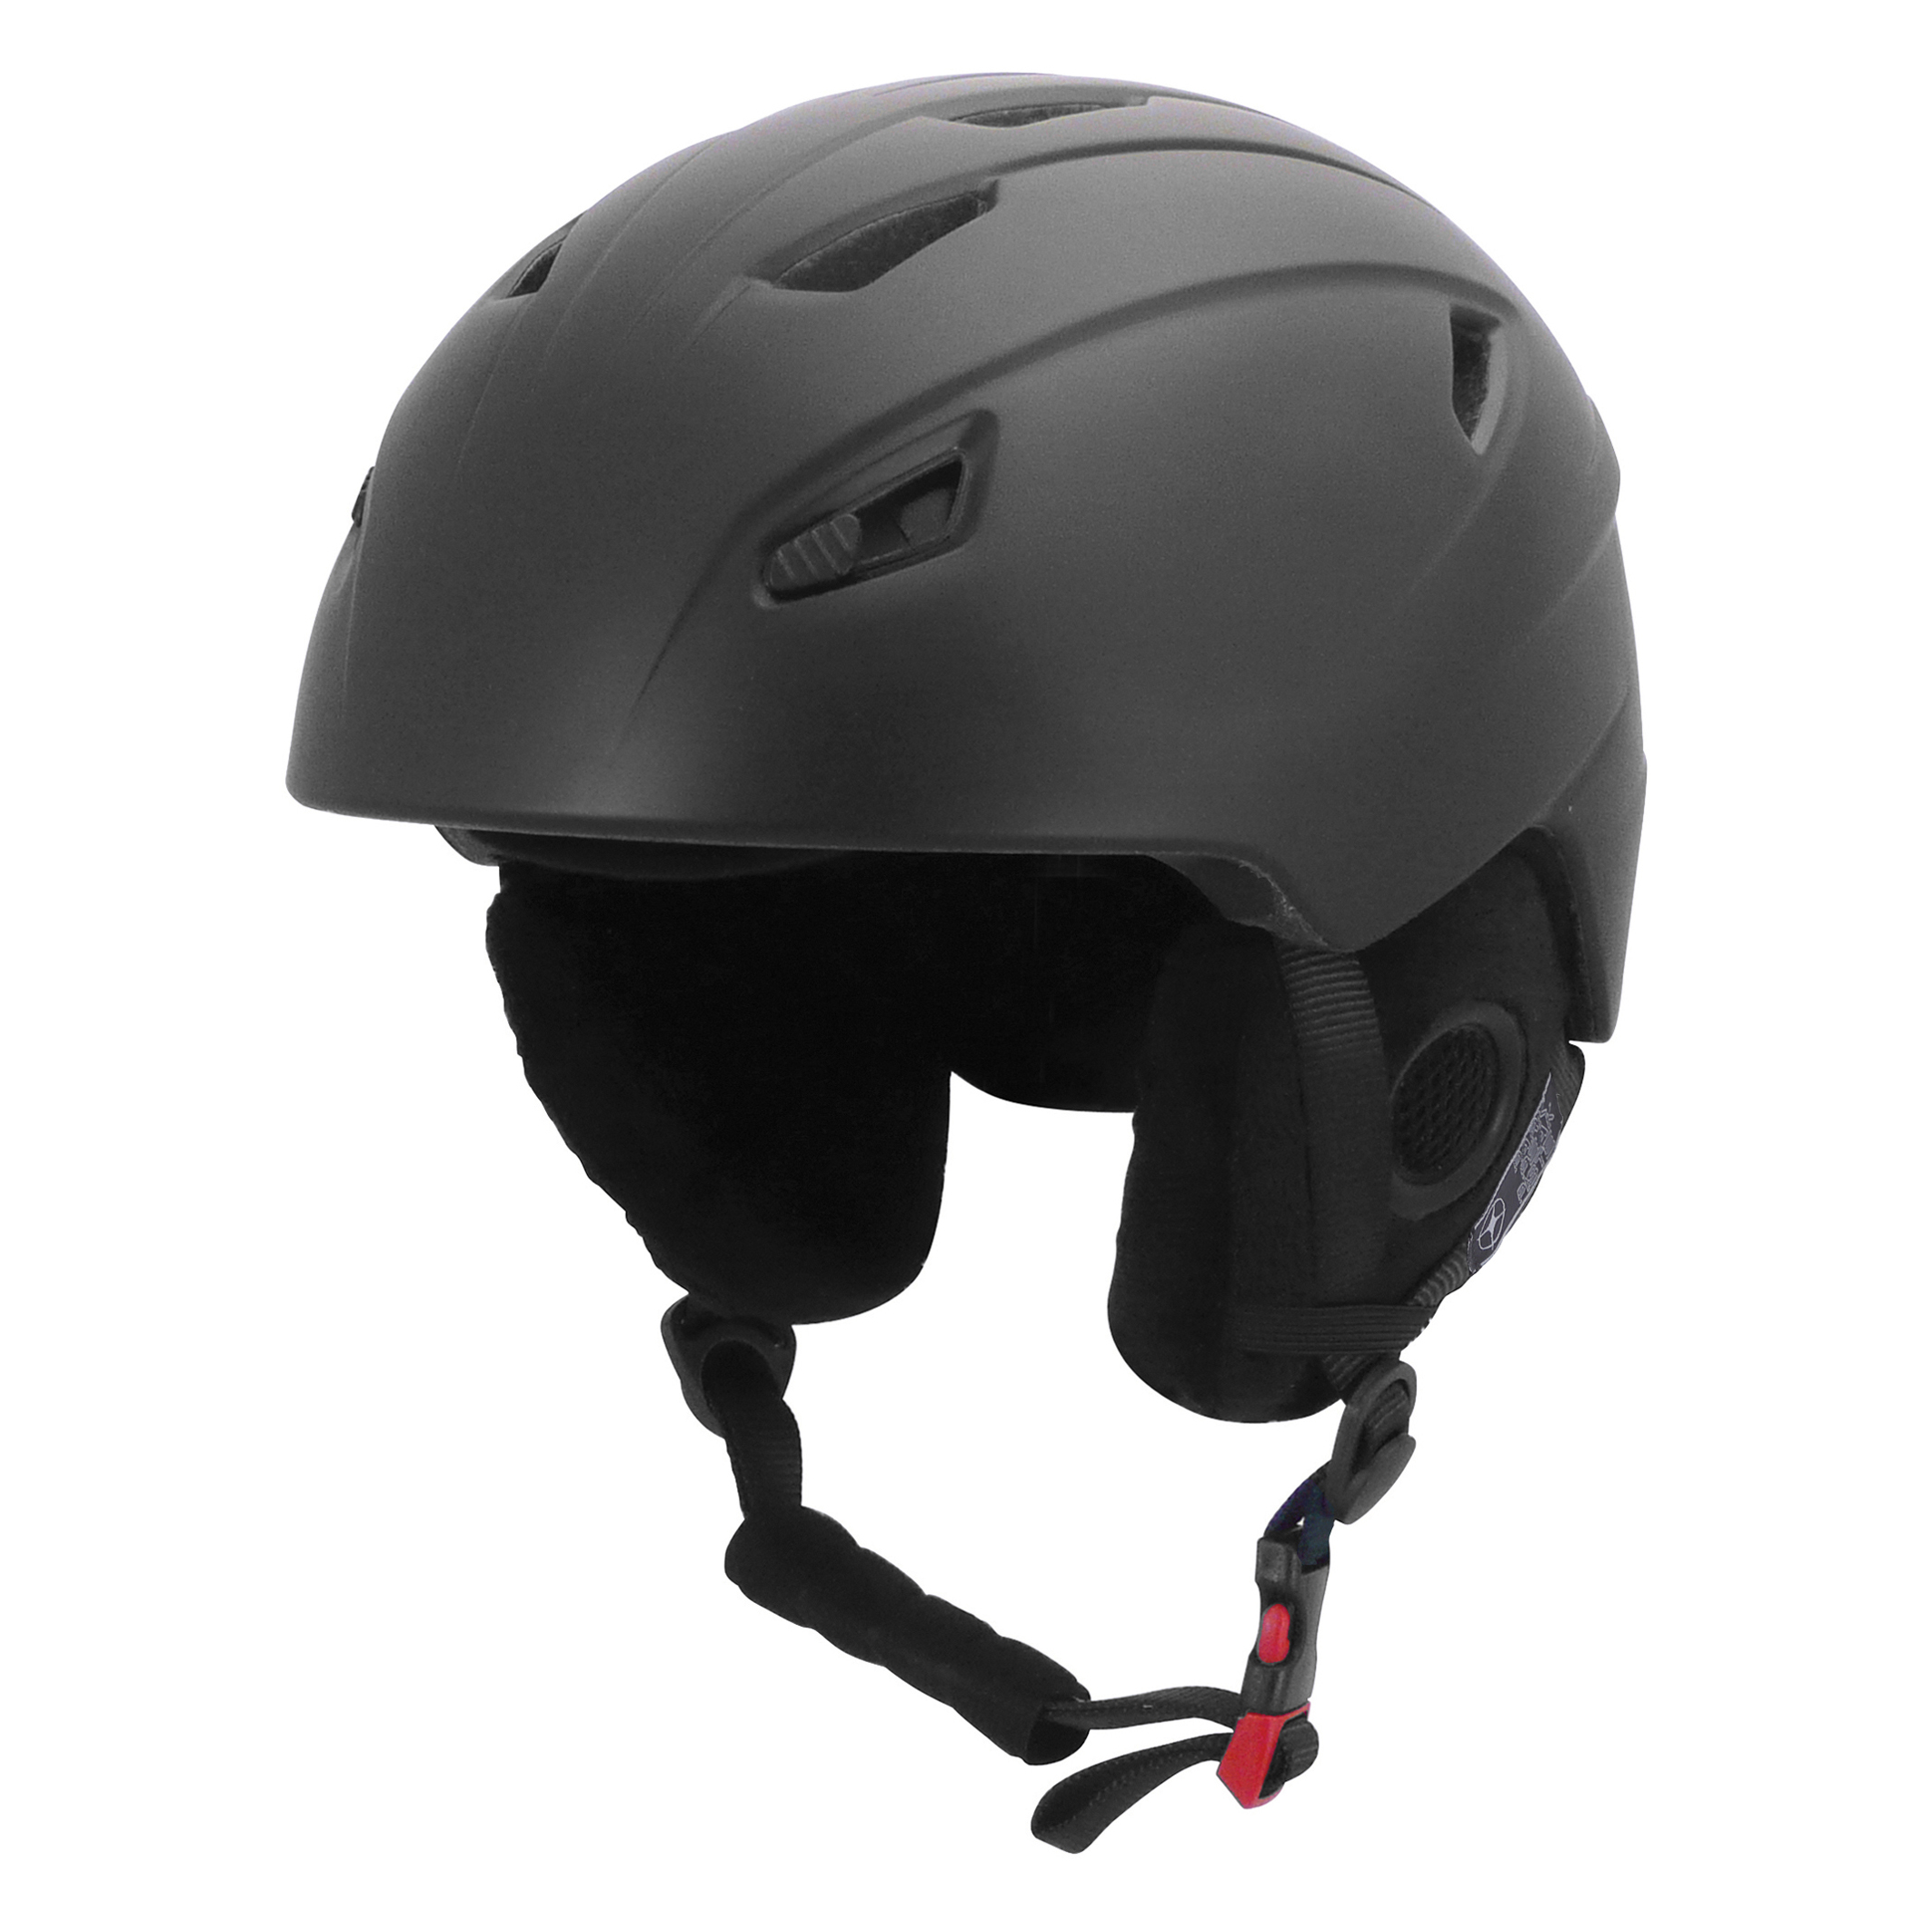 Park Ski Helmet for Women